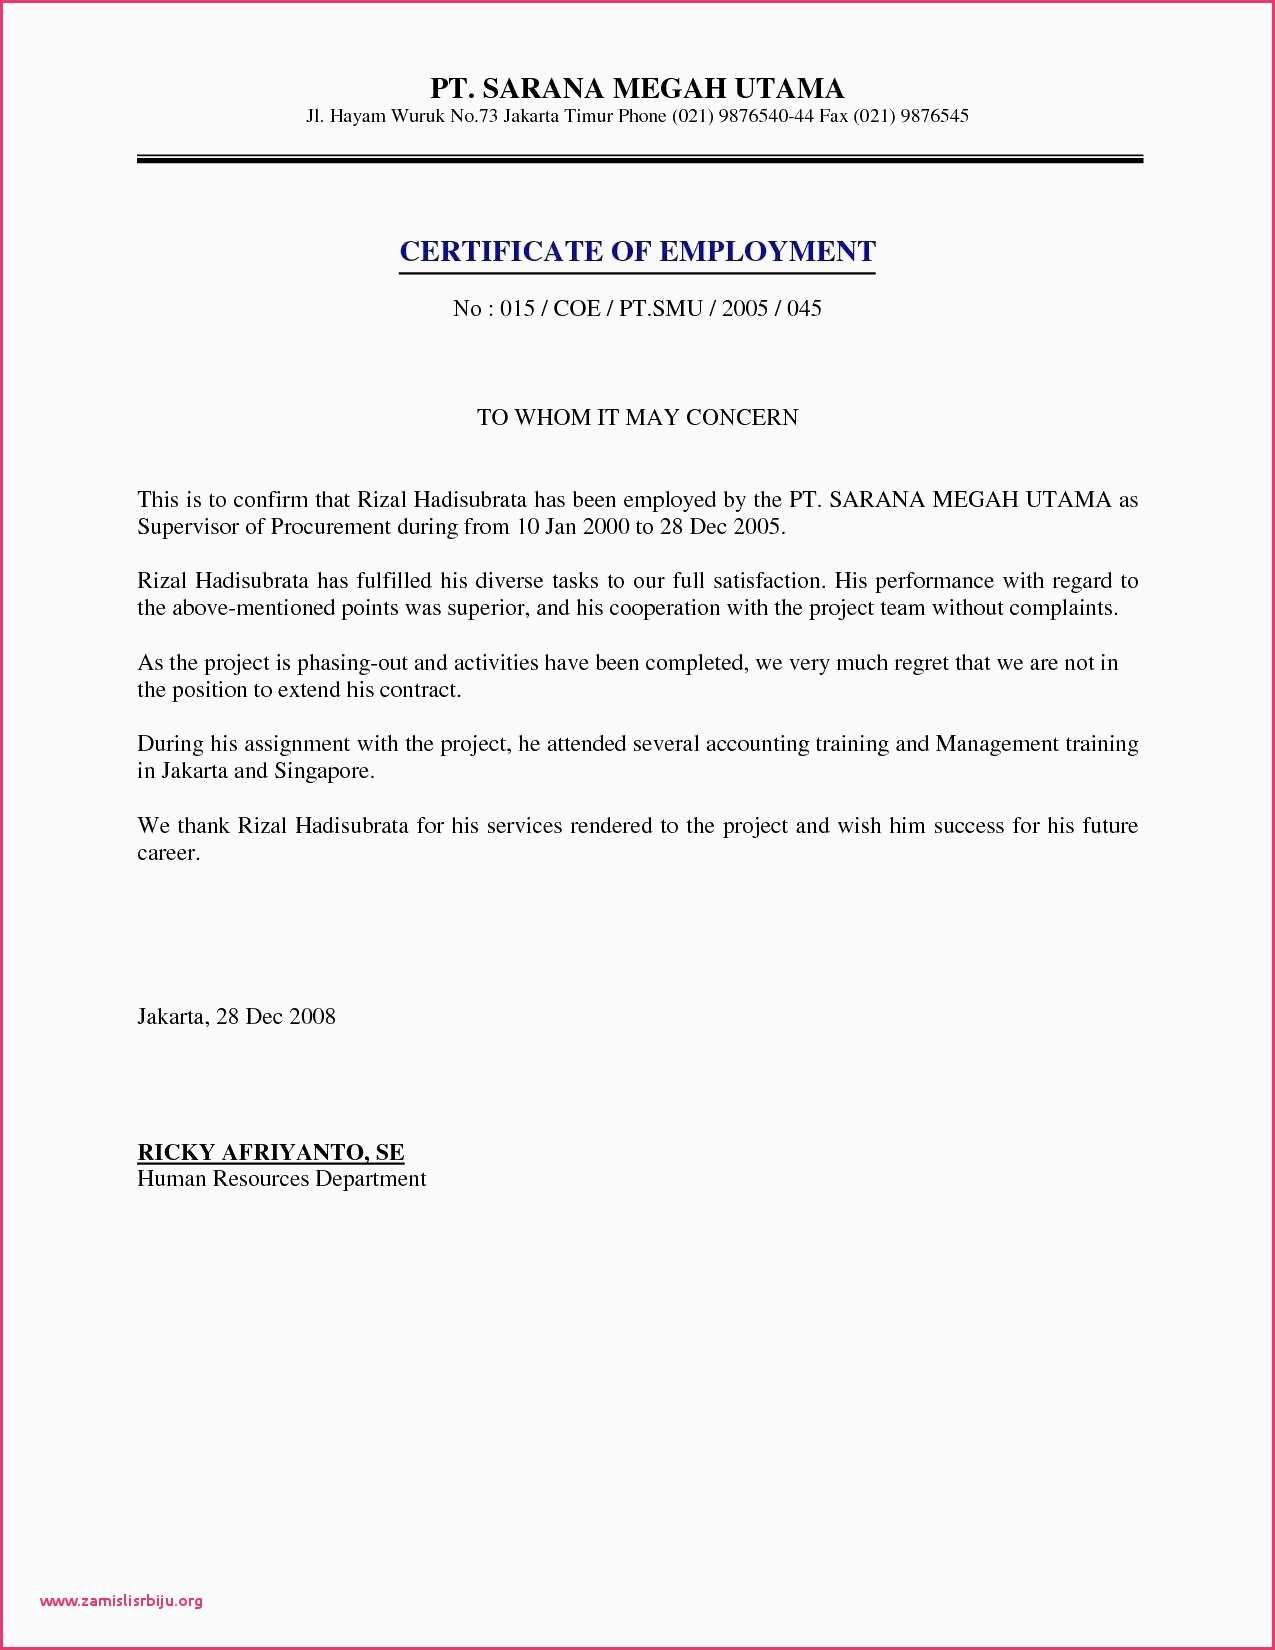 26 Fax Cover Letter Sample In 2020 Job Letter Certificate Of